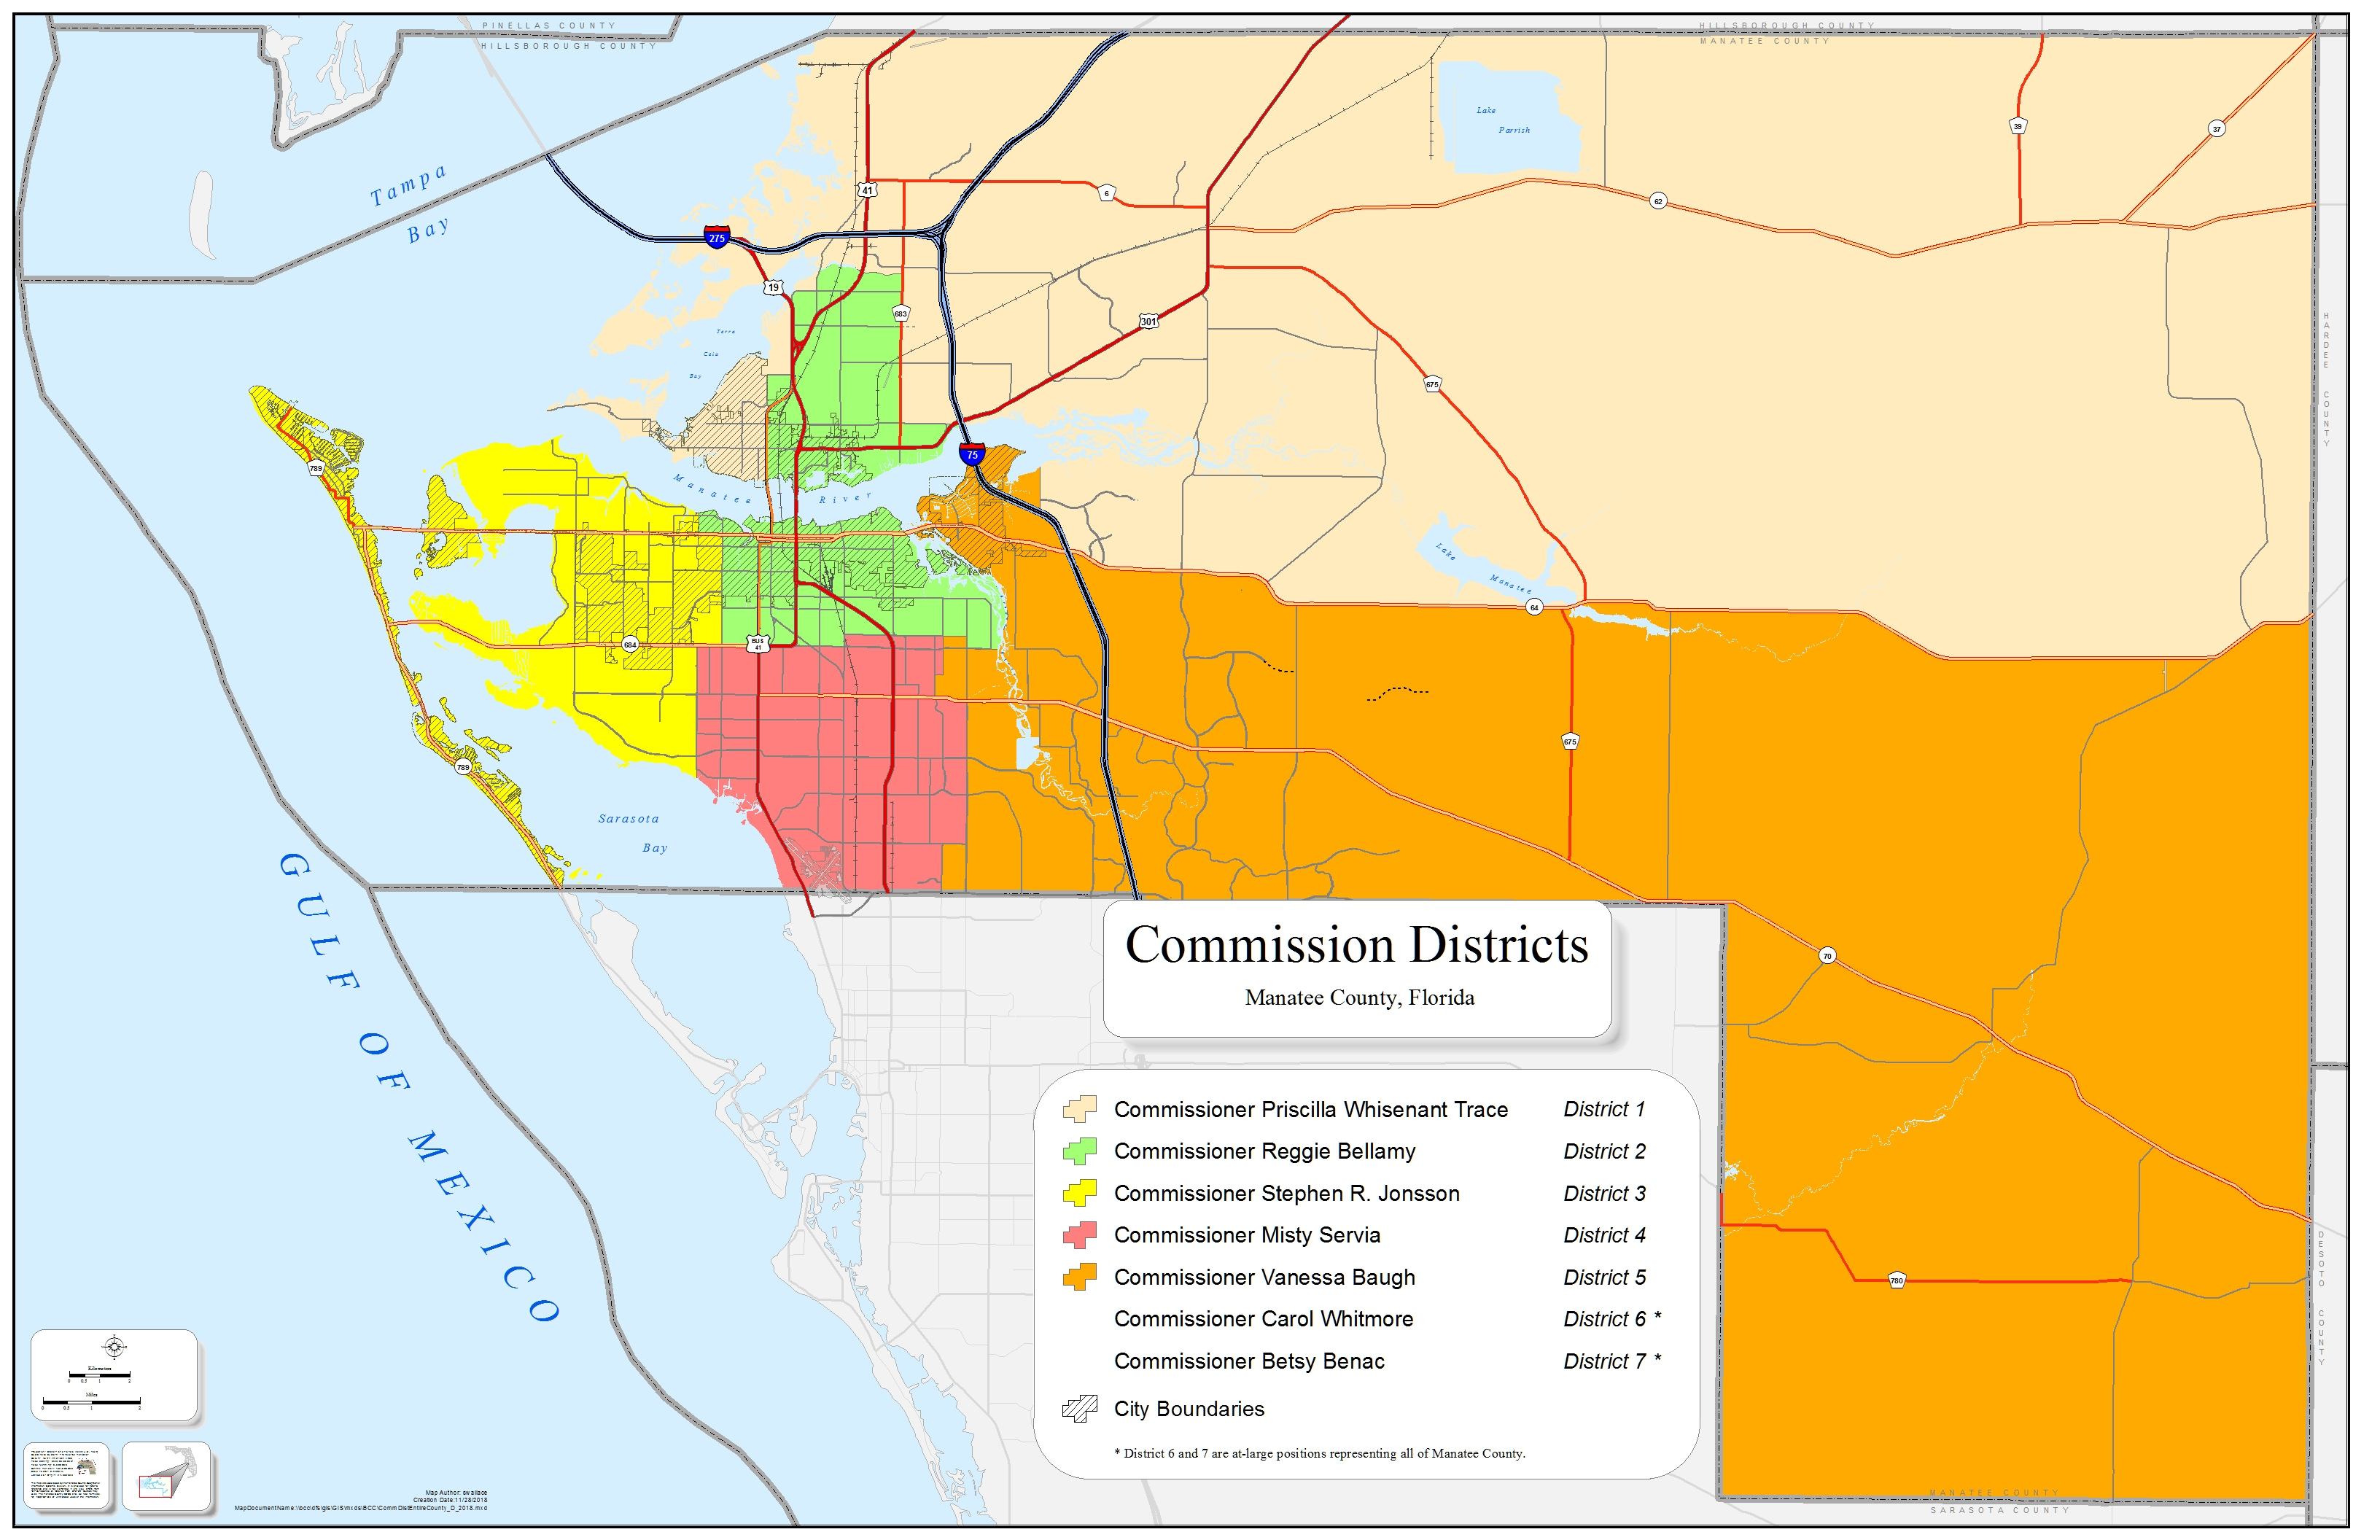 Board Of County Commissioners - Manatee County - Manatee Florida Map